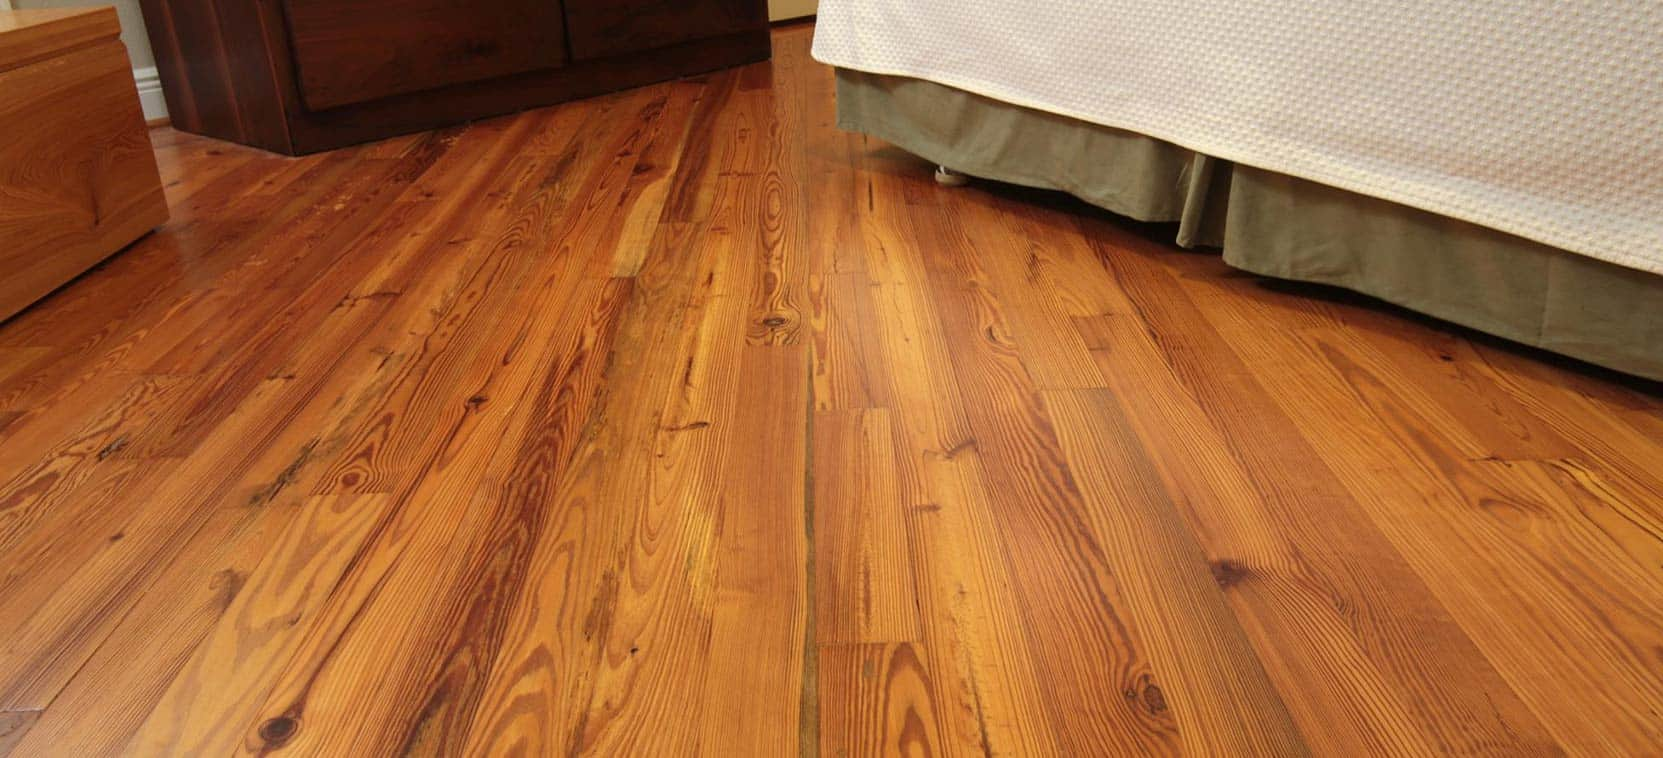 River-Recovered Antique Heart Pine Character Wood Flooring